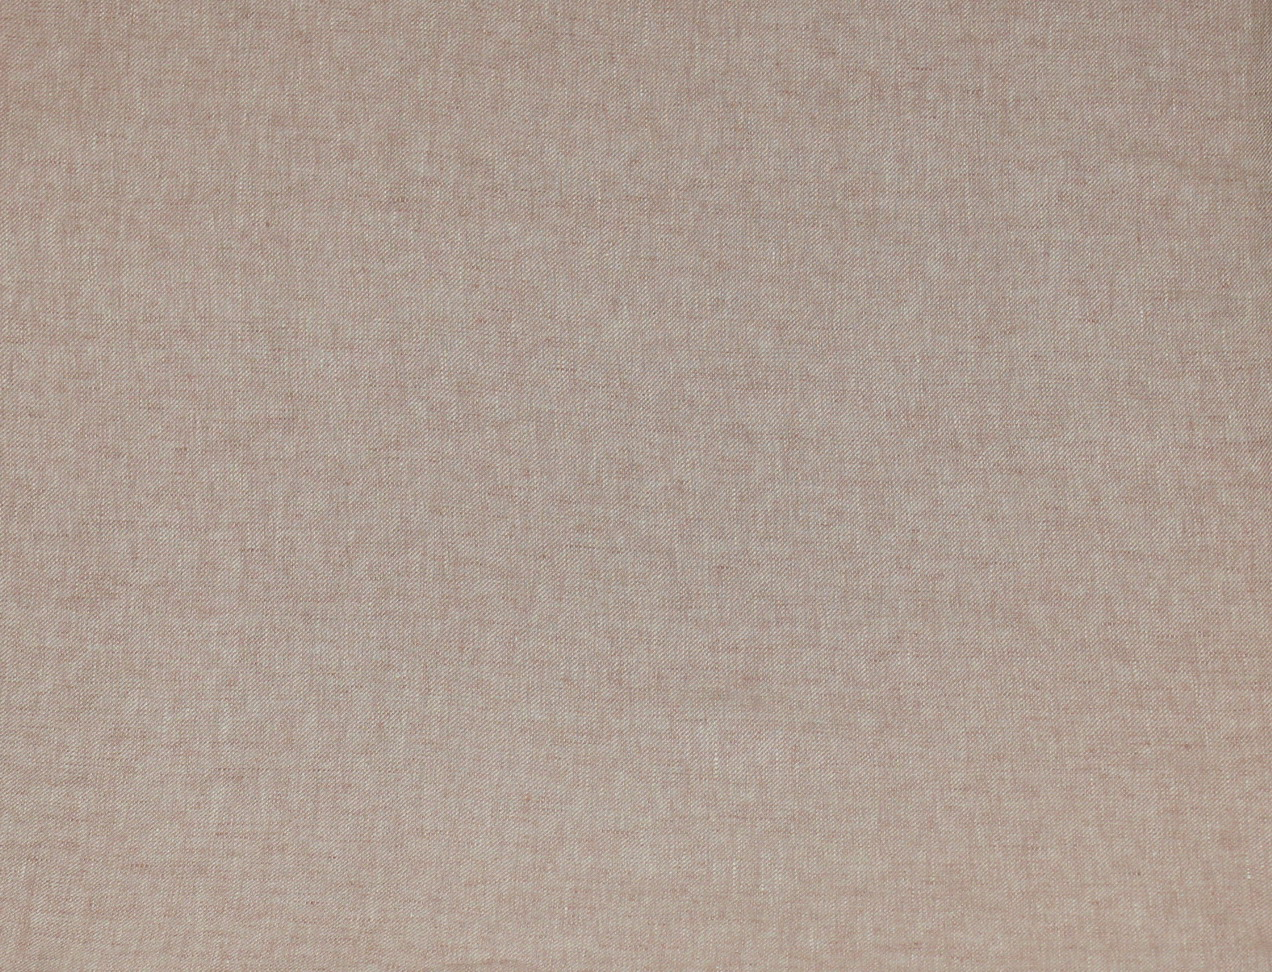 CASTELLINO TWILL MACHE' White/Powder